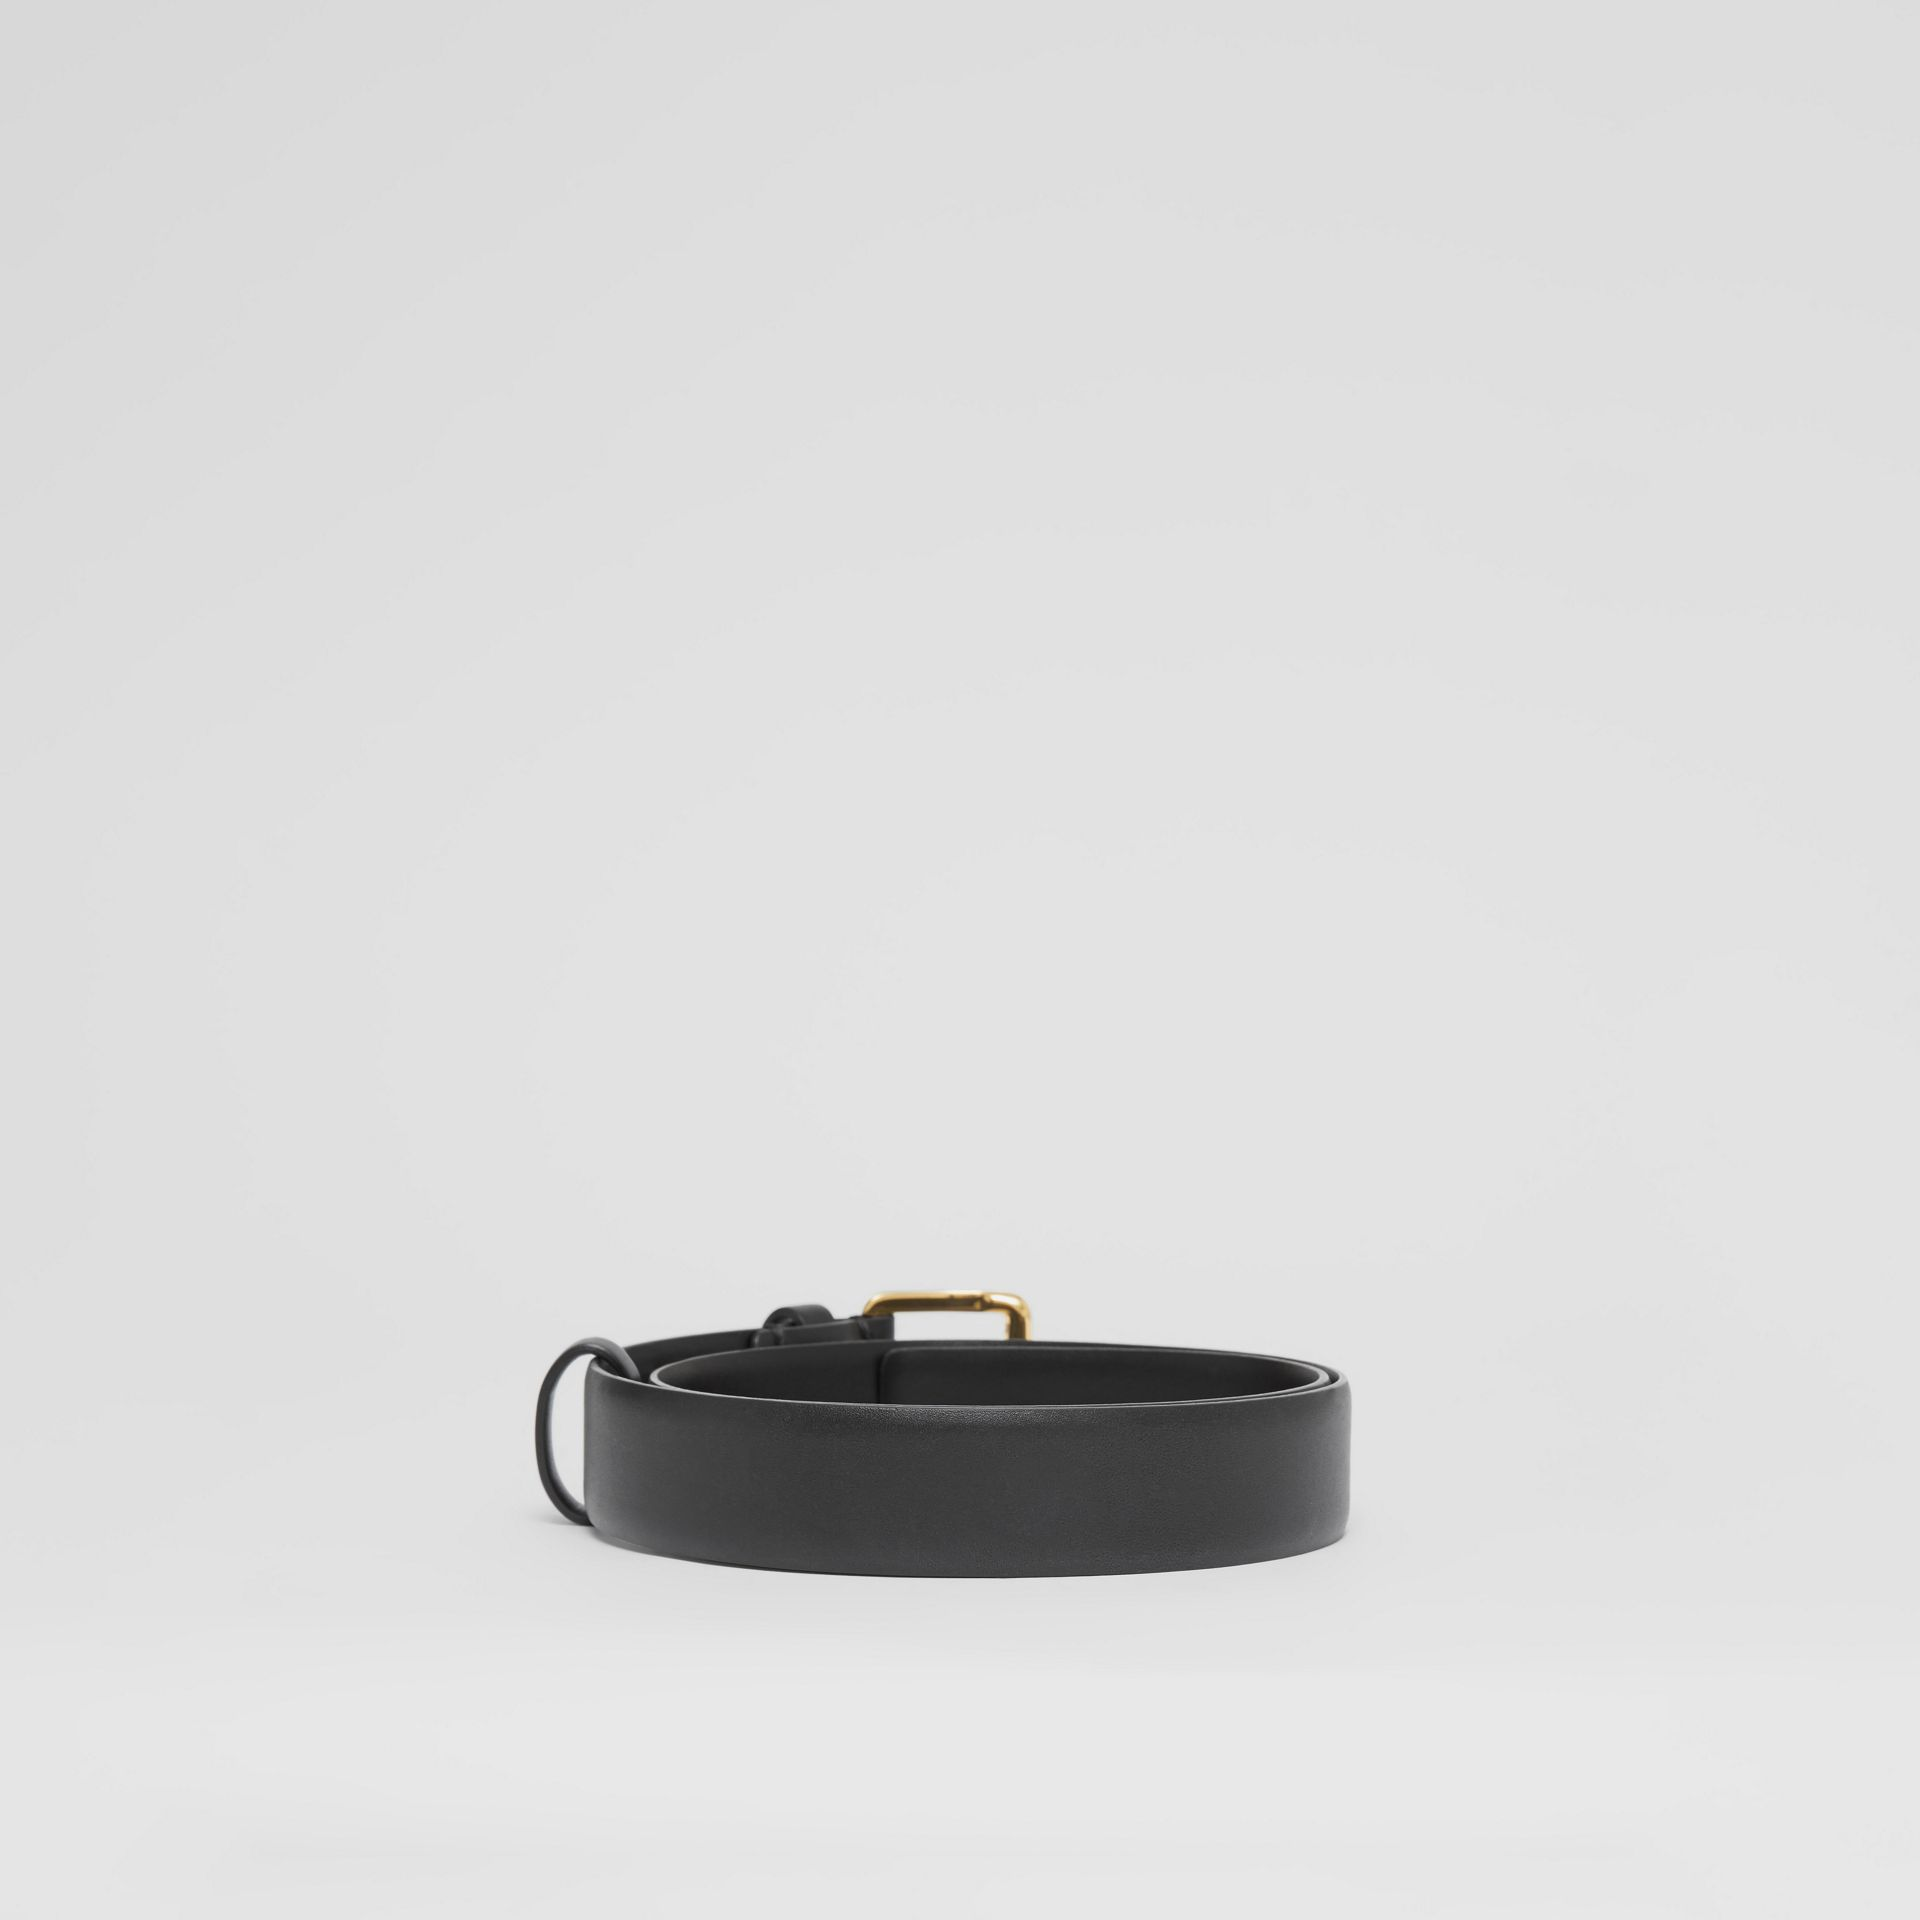 Monogram Motif Leather Belt in Black - Women | Burberry - gallery image 4